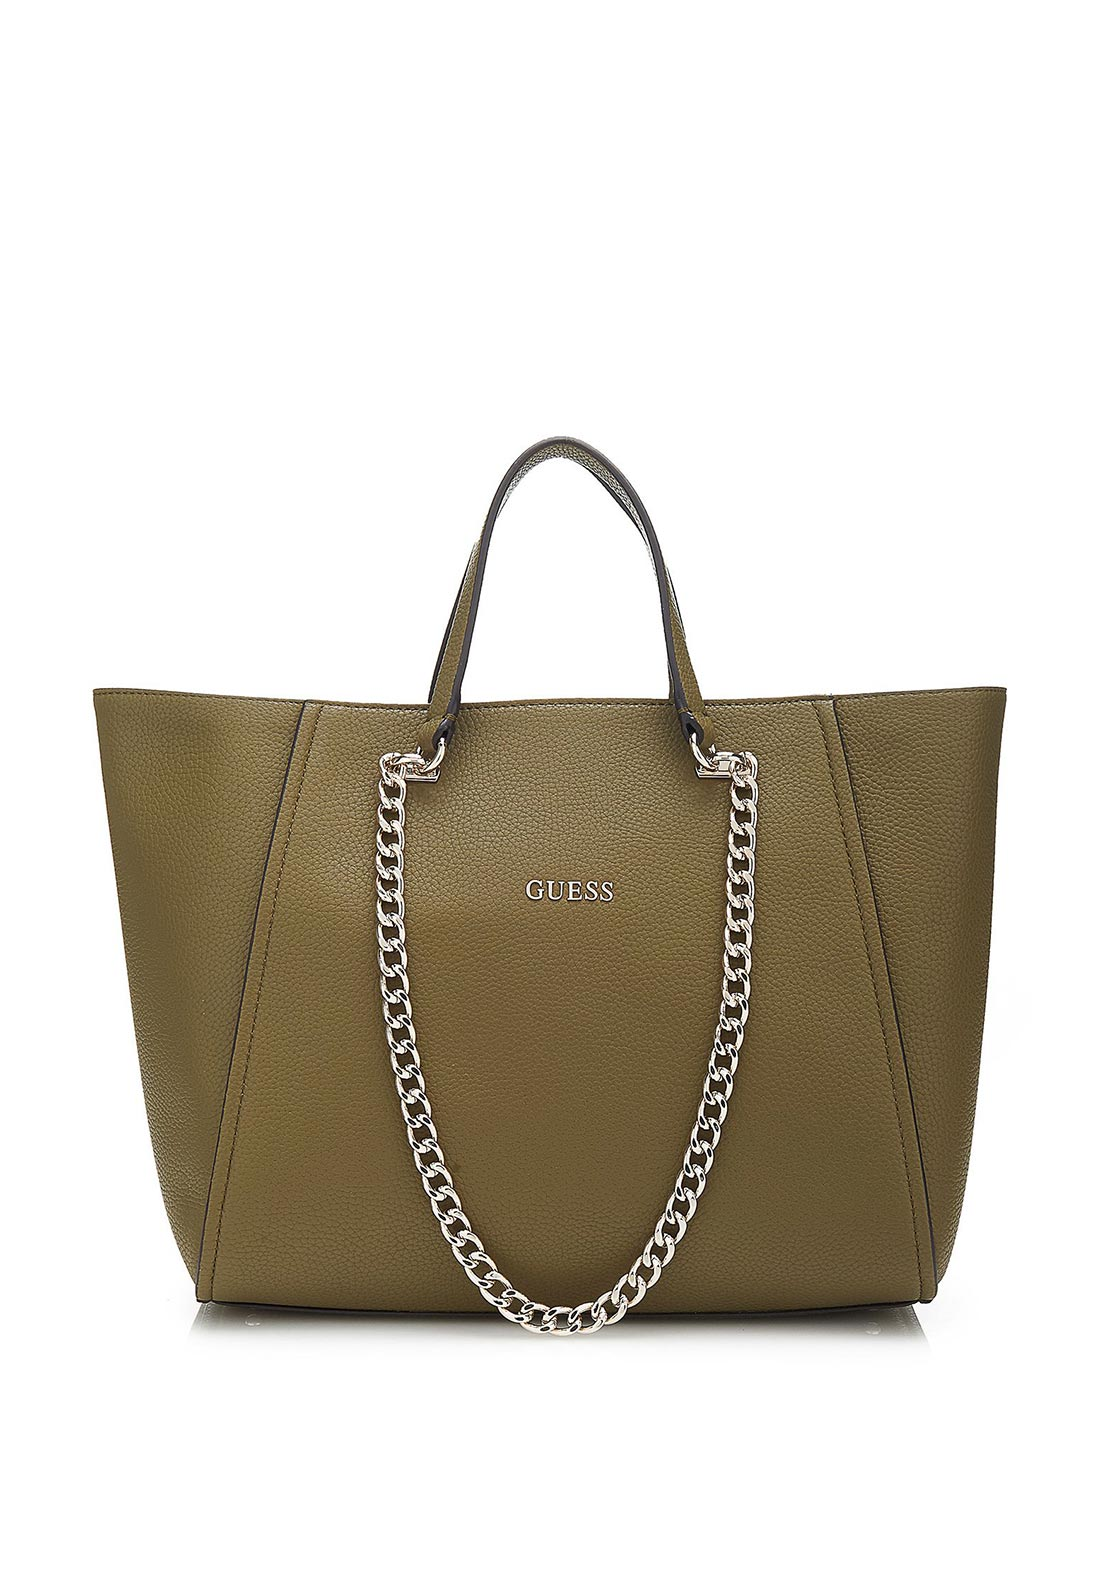 Guess Nikki Chain Tote Bag, Olive